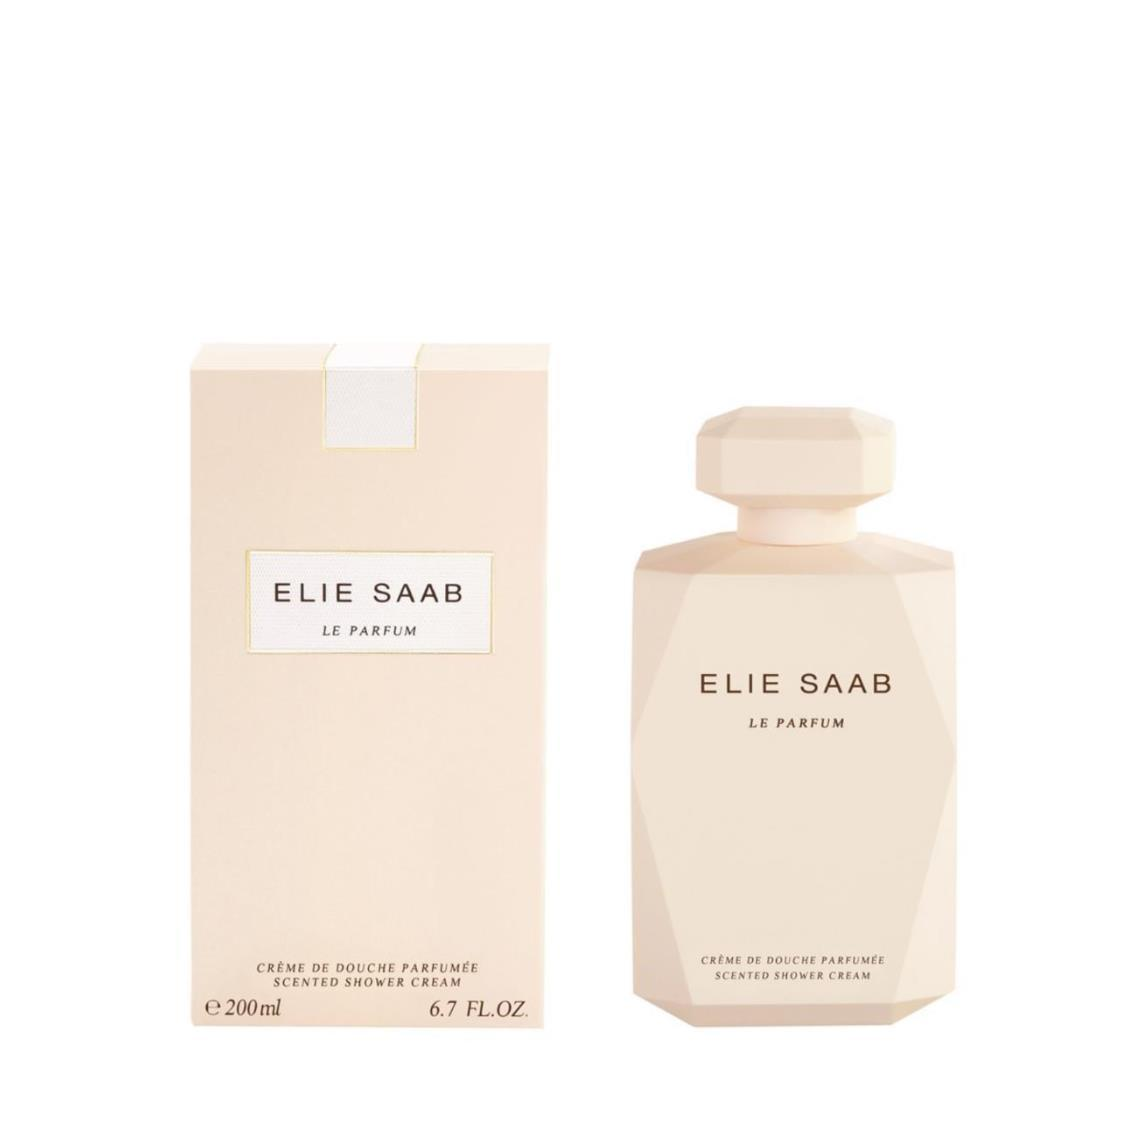 Elie Saab Le Parfum Scented Shower Cream 200ml